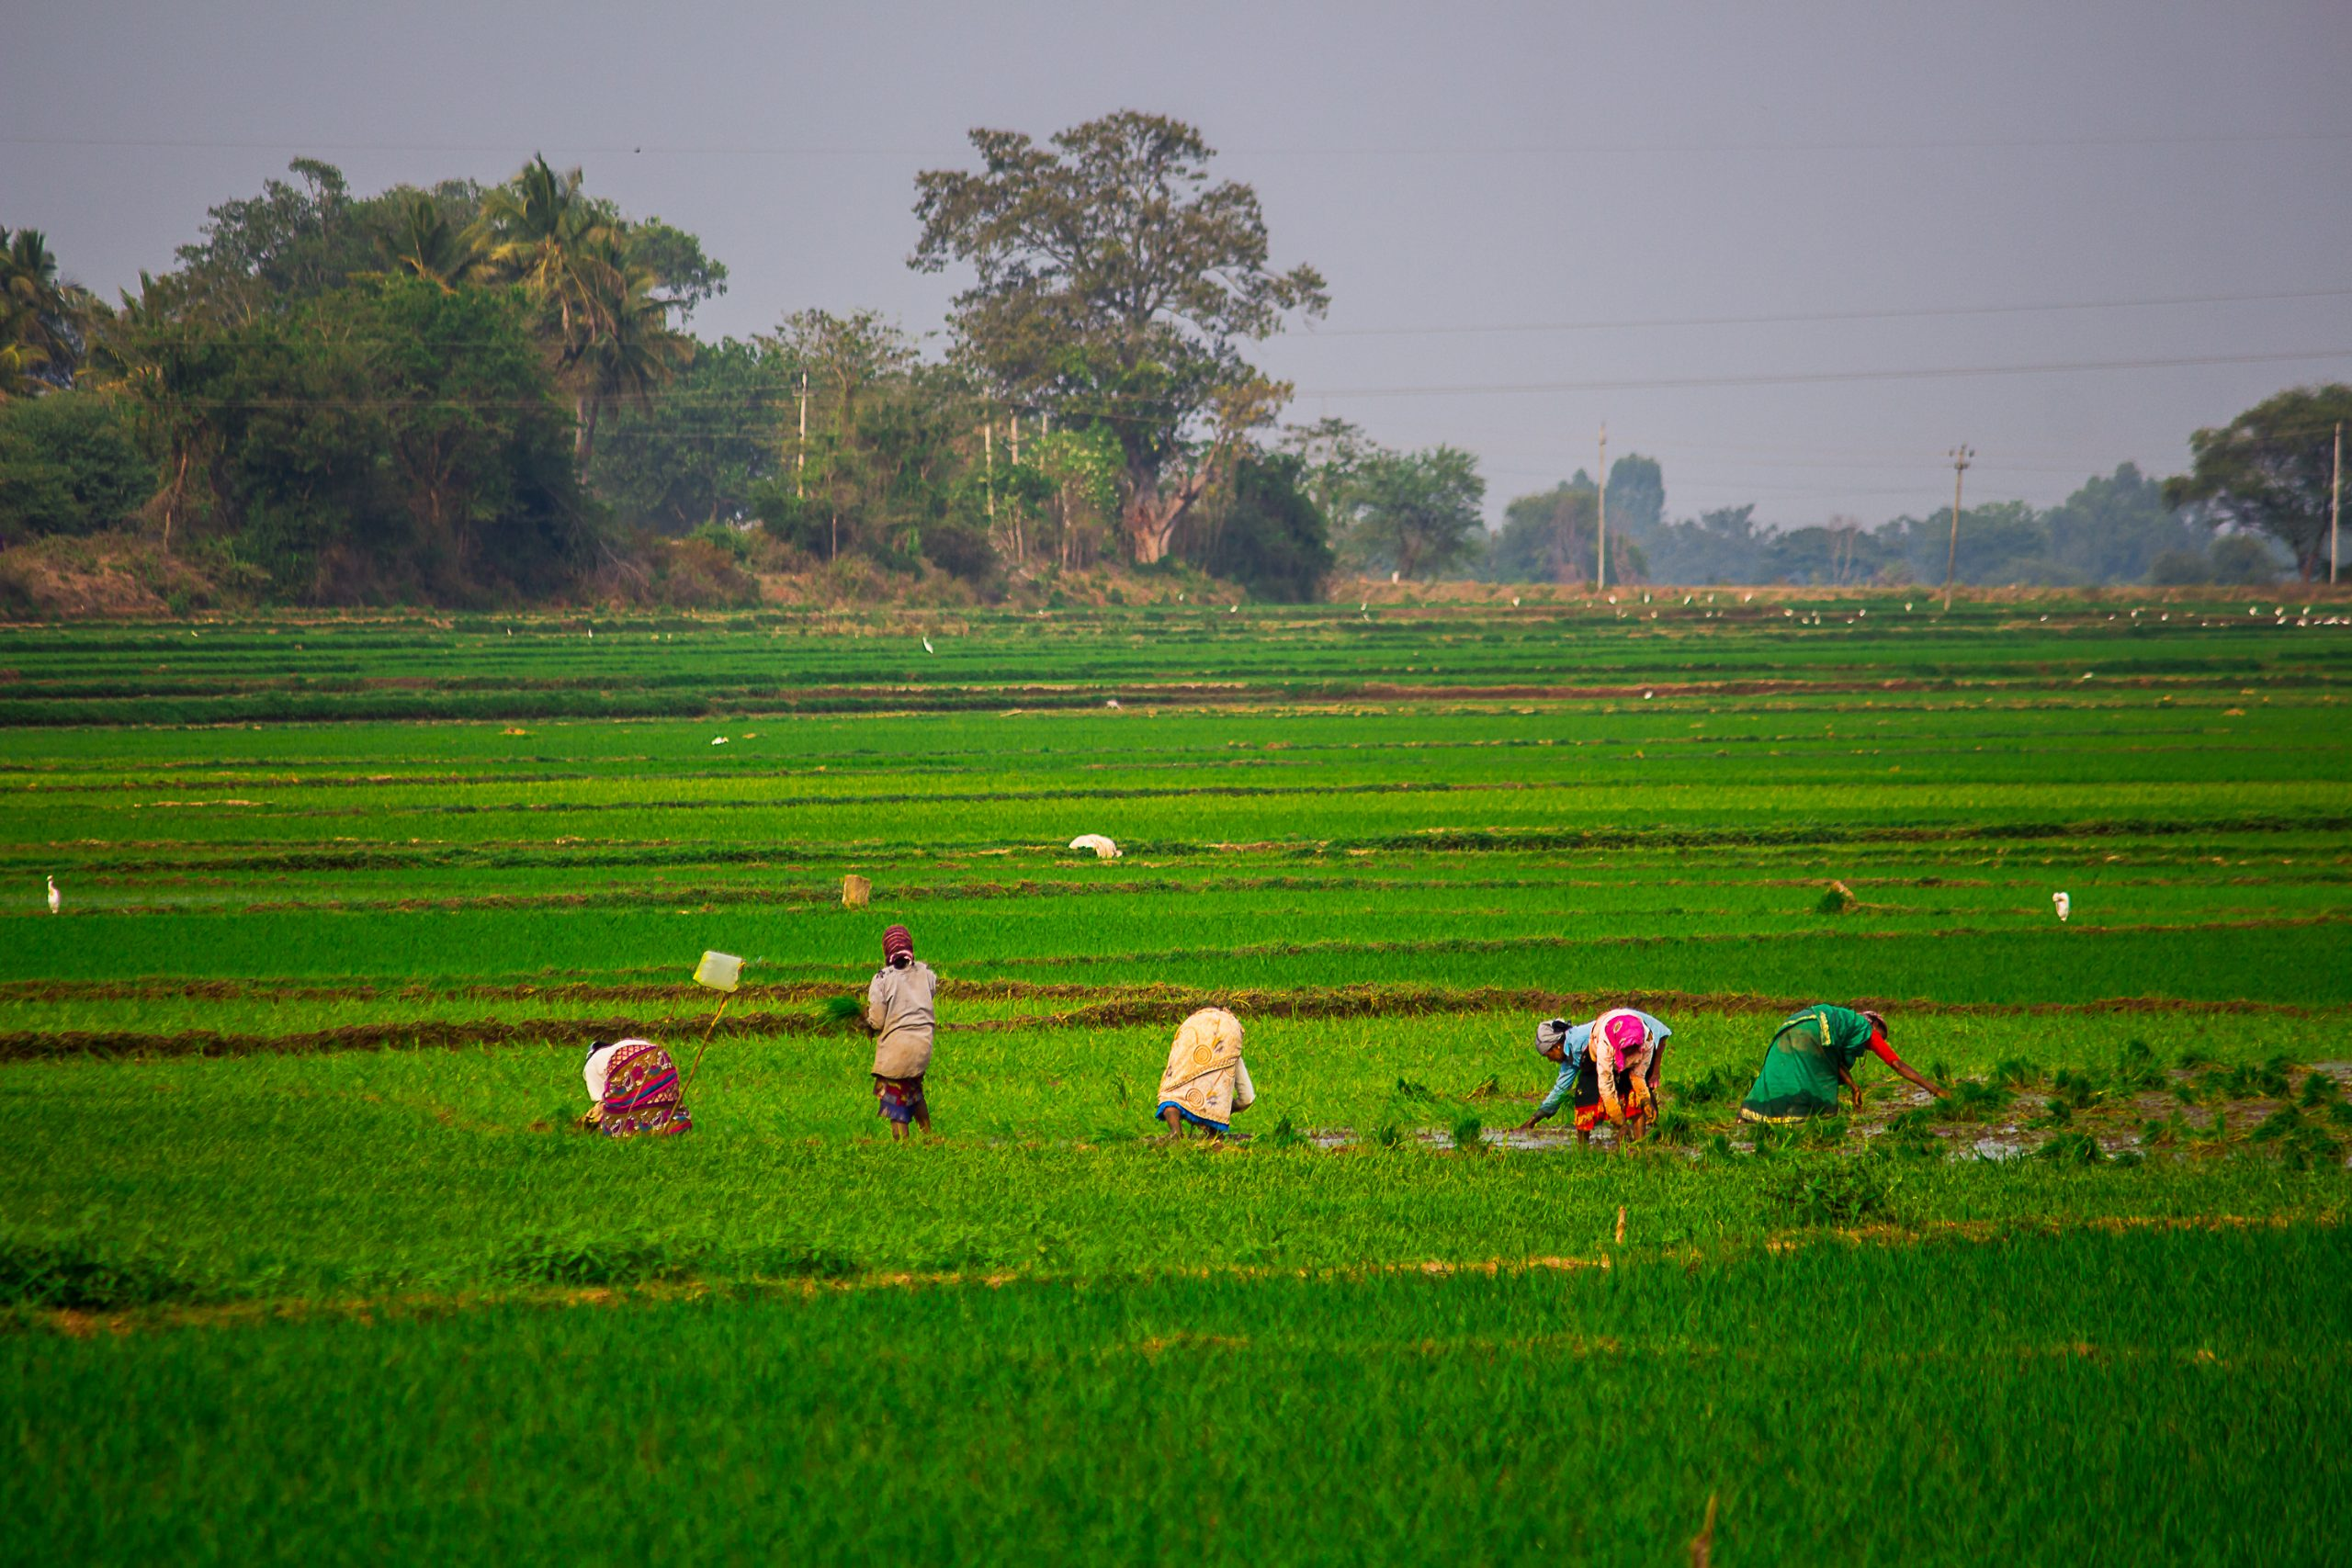 Farmers working in the Paddy Field